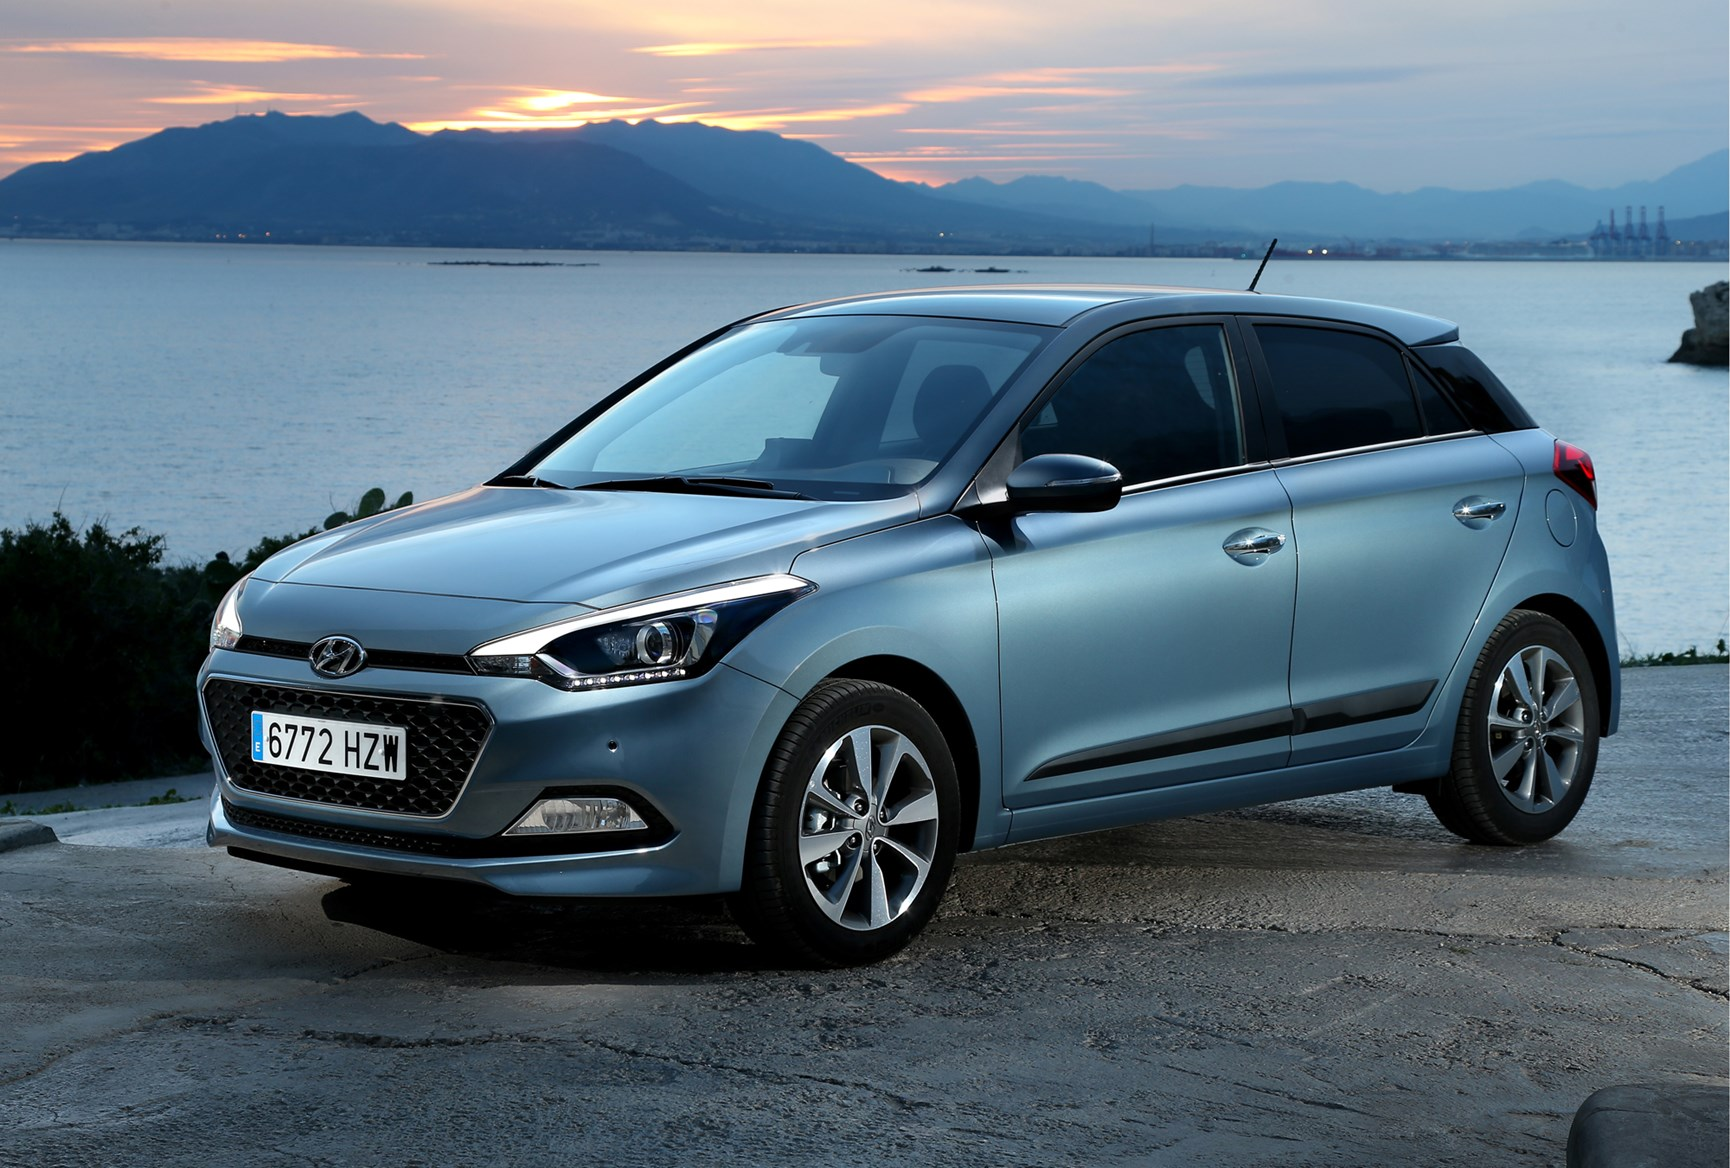 hyundai i20 hatchback 2015 photos parkers. Black Bedroom Furniture Sets. Home Design Ideas